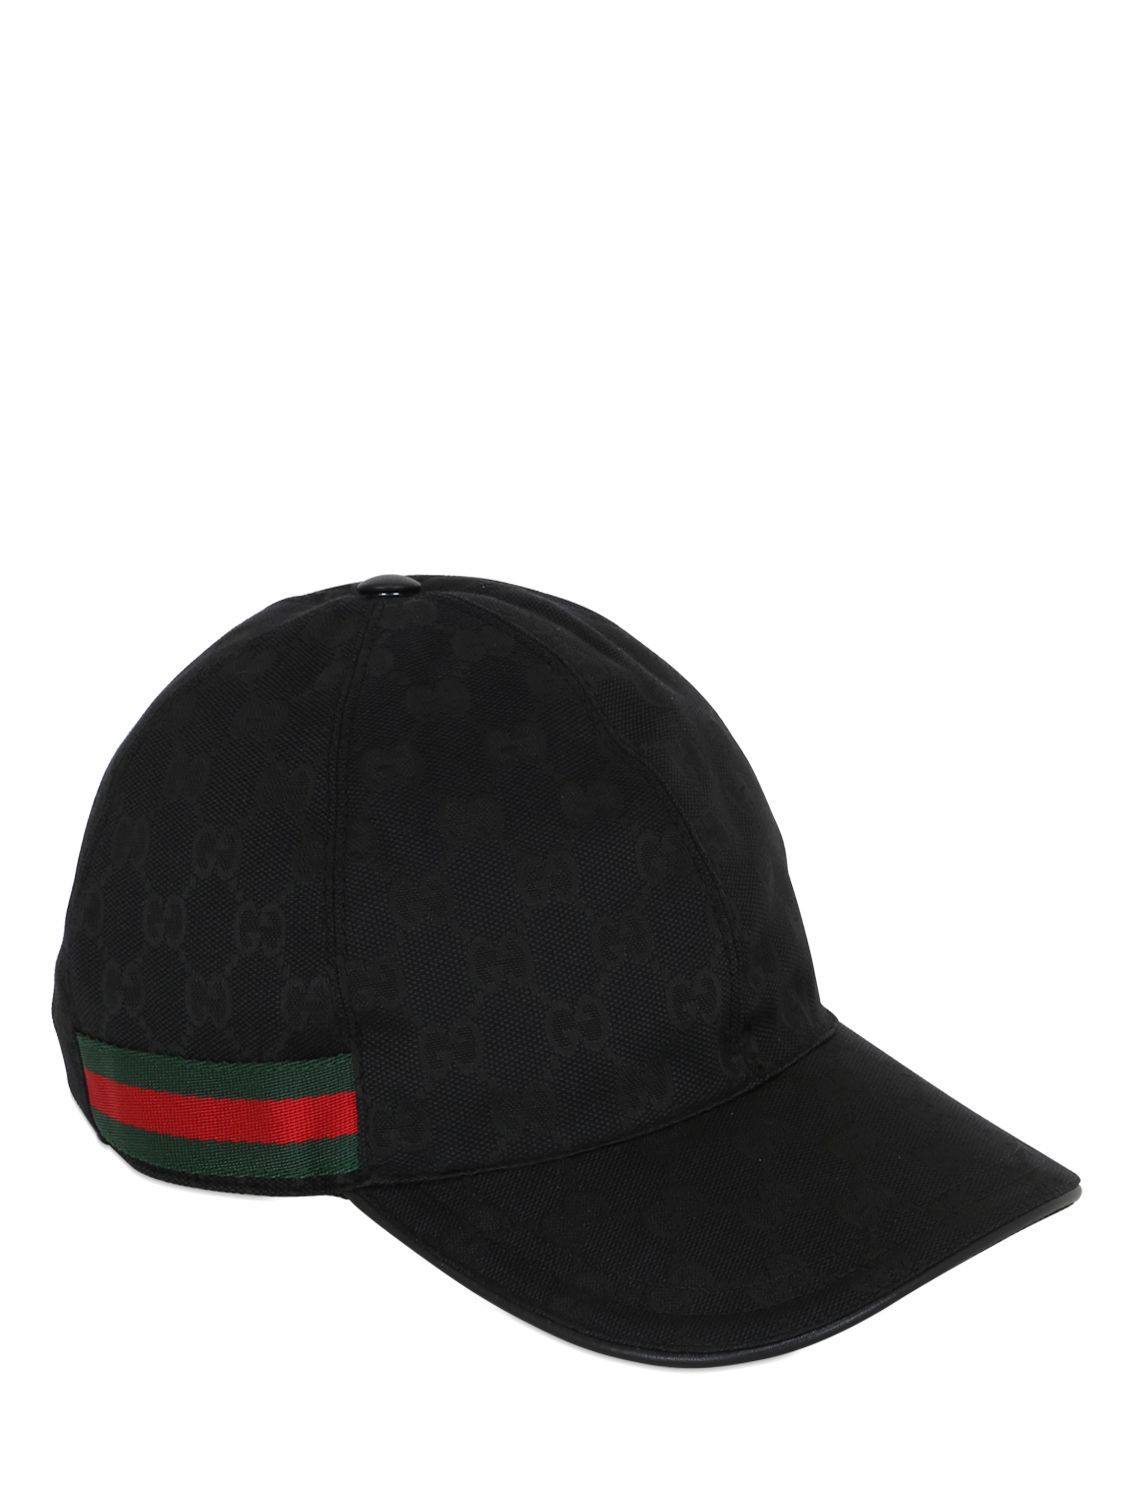 GUCCI ORIGINAL GG CANVAS BASEBALL HAT.  gucci    4d1834d40a2